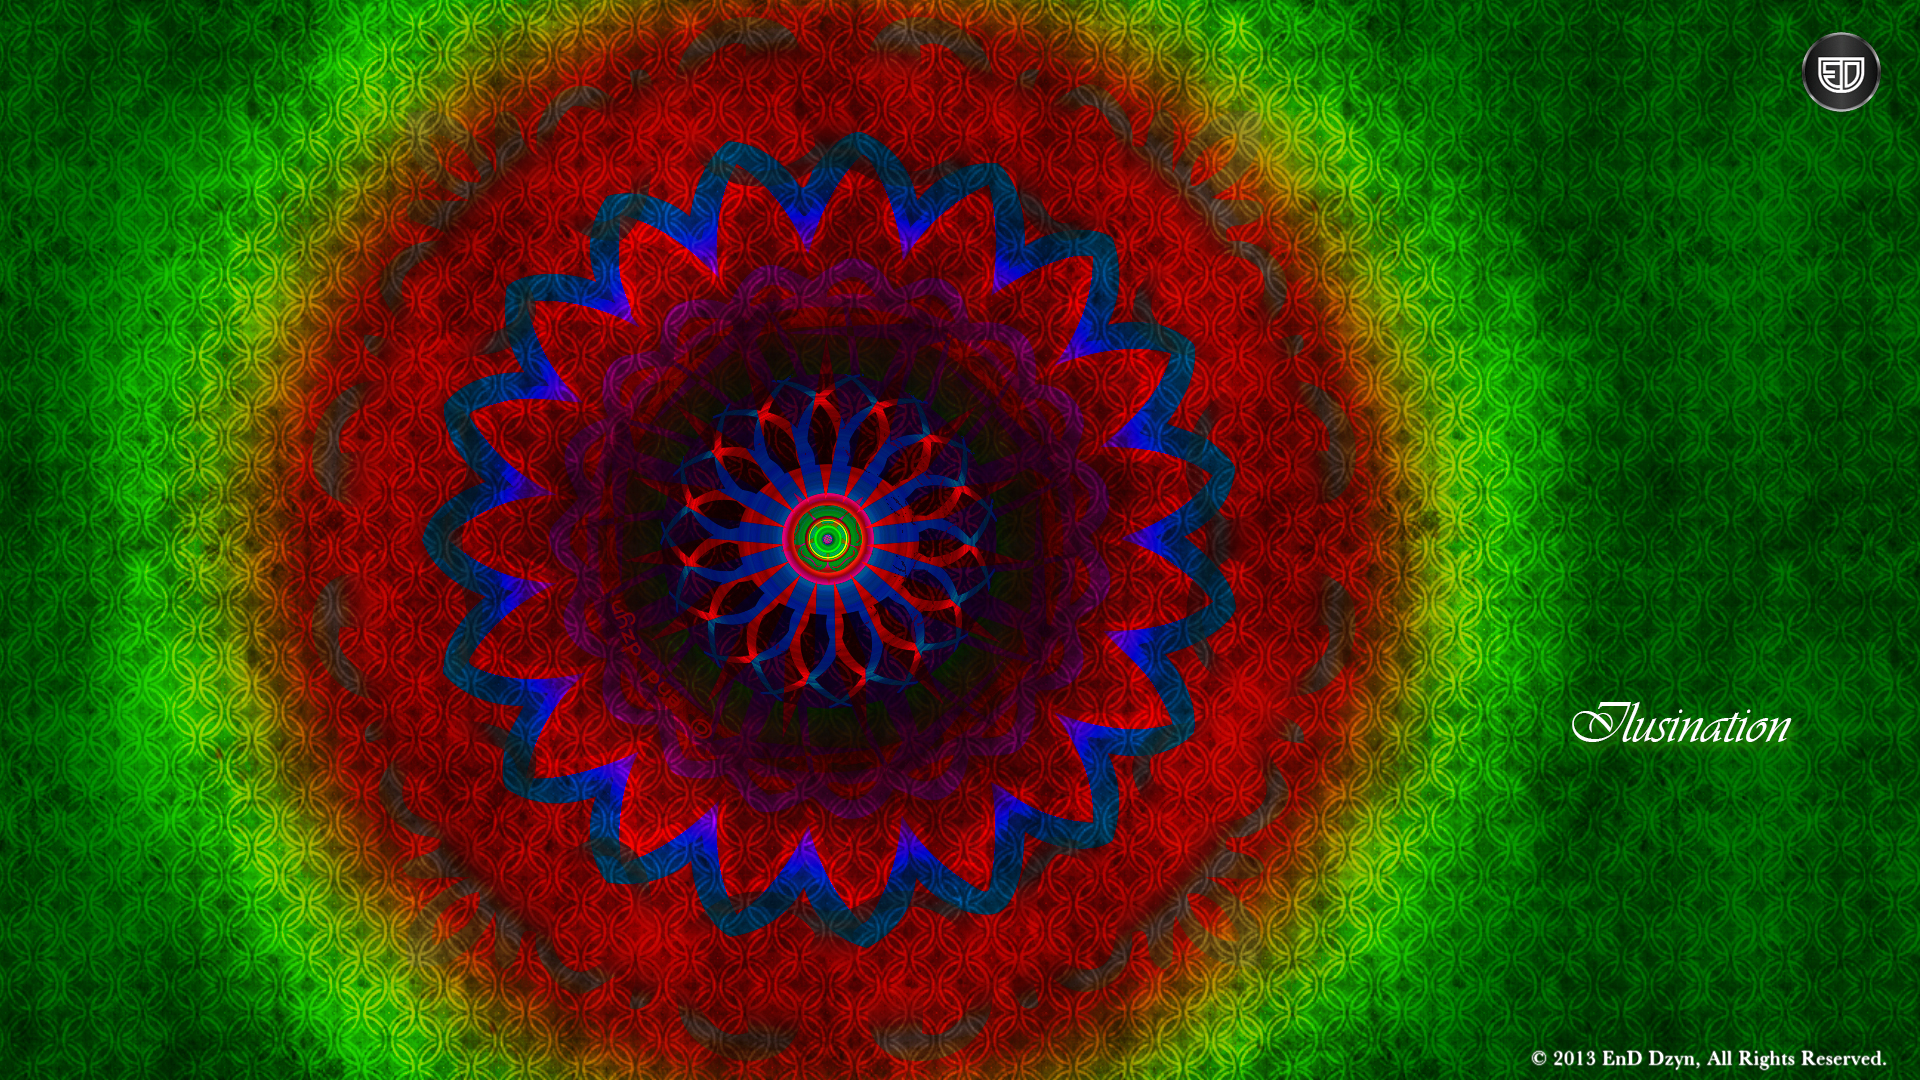 Design Illusination Abstract HD Wallpaper Backgrounds   EnD Dzyn 1920x1080